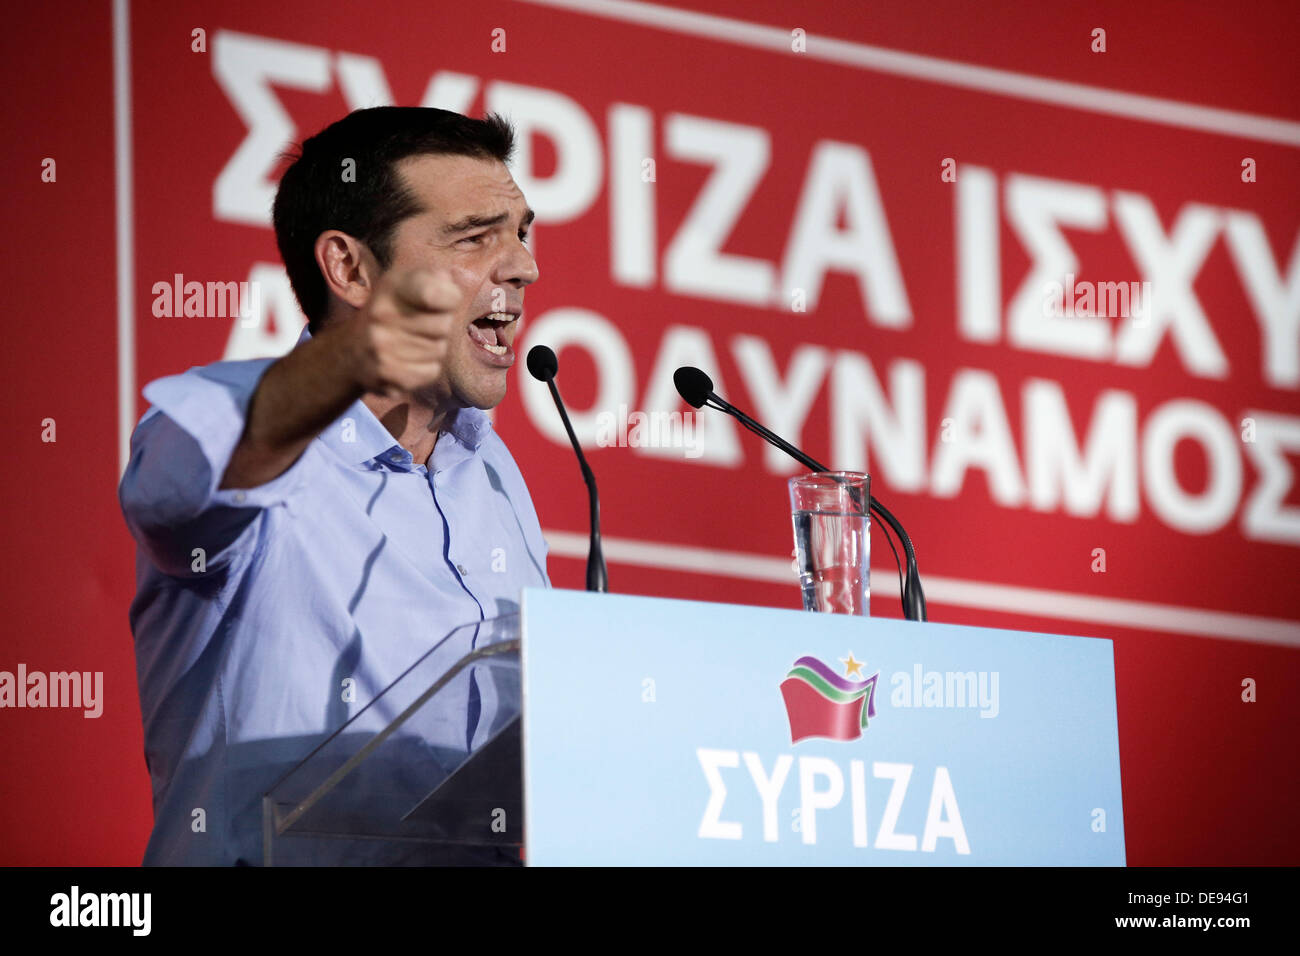 Thessaloniki, Greece . 13th Sep, 2013. Leader of the Greek Opposition party SYRIZA Alexis Tsipras addresses supporters and party members in his keynote speech in open meeting at the White Tower square on the occasion of three-day visit to the 78th TIF. Thessaloniki, Greece on September 13, 2013. Credit:  Konstantinos Tsakalidis/Alamy Live News - Stock Image